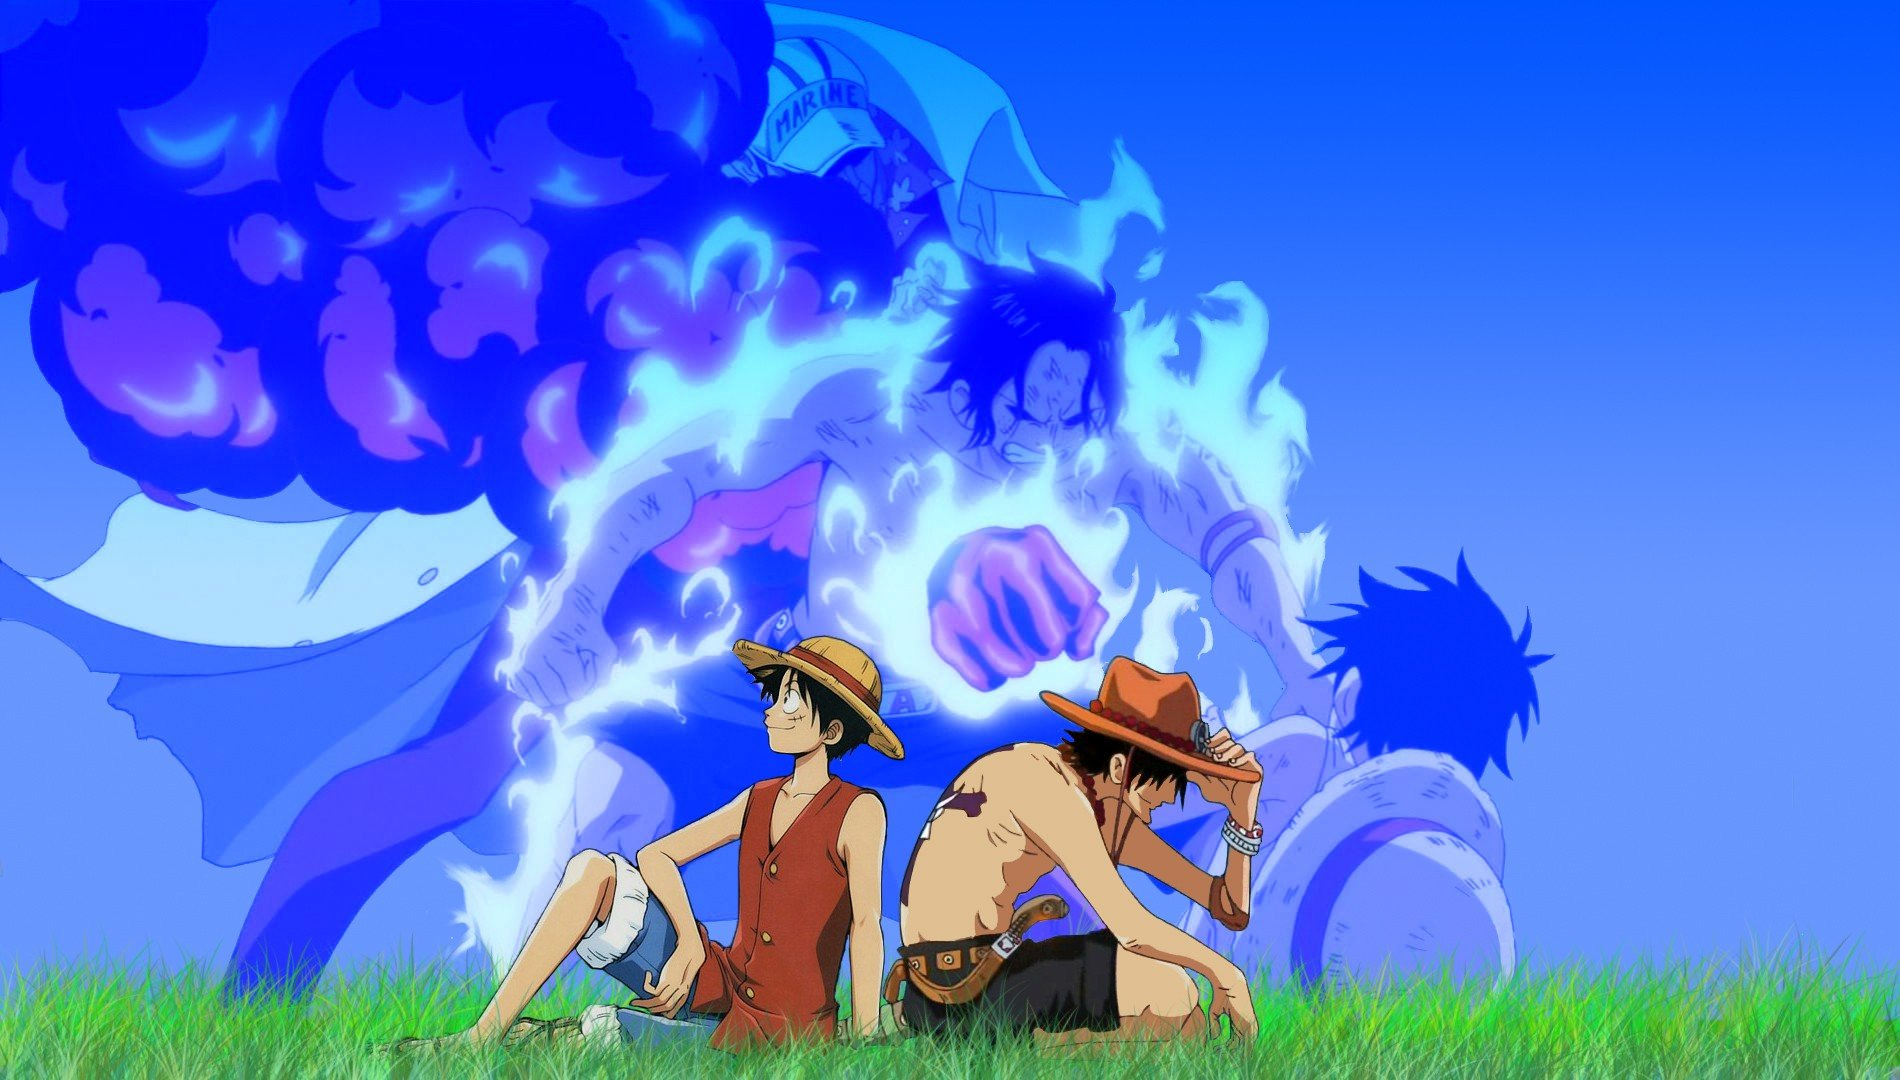 ace and luffy fighting wallpaper - photo #6